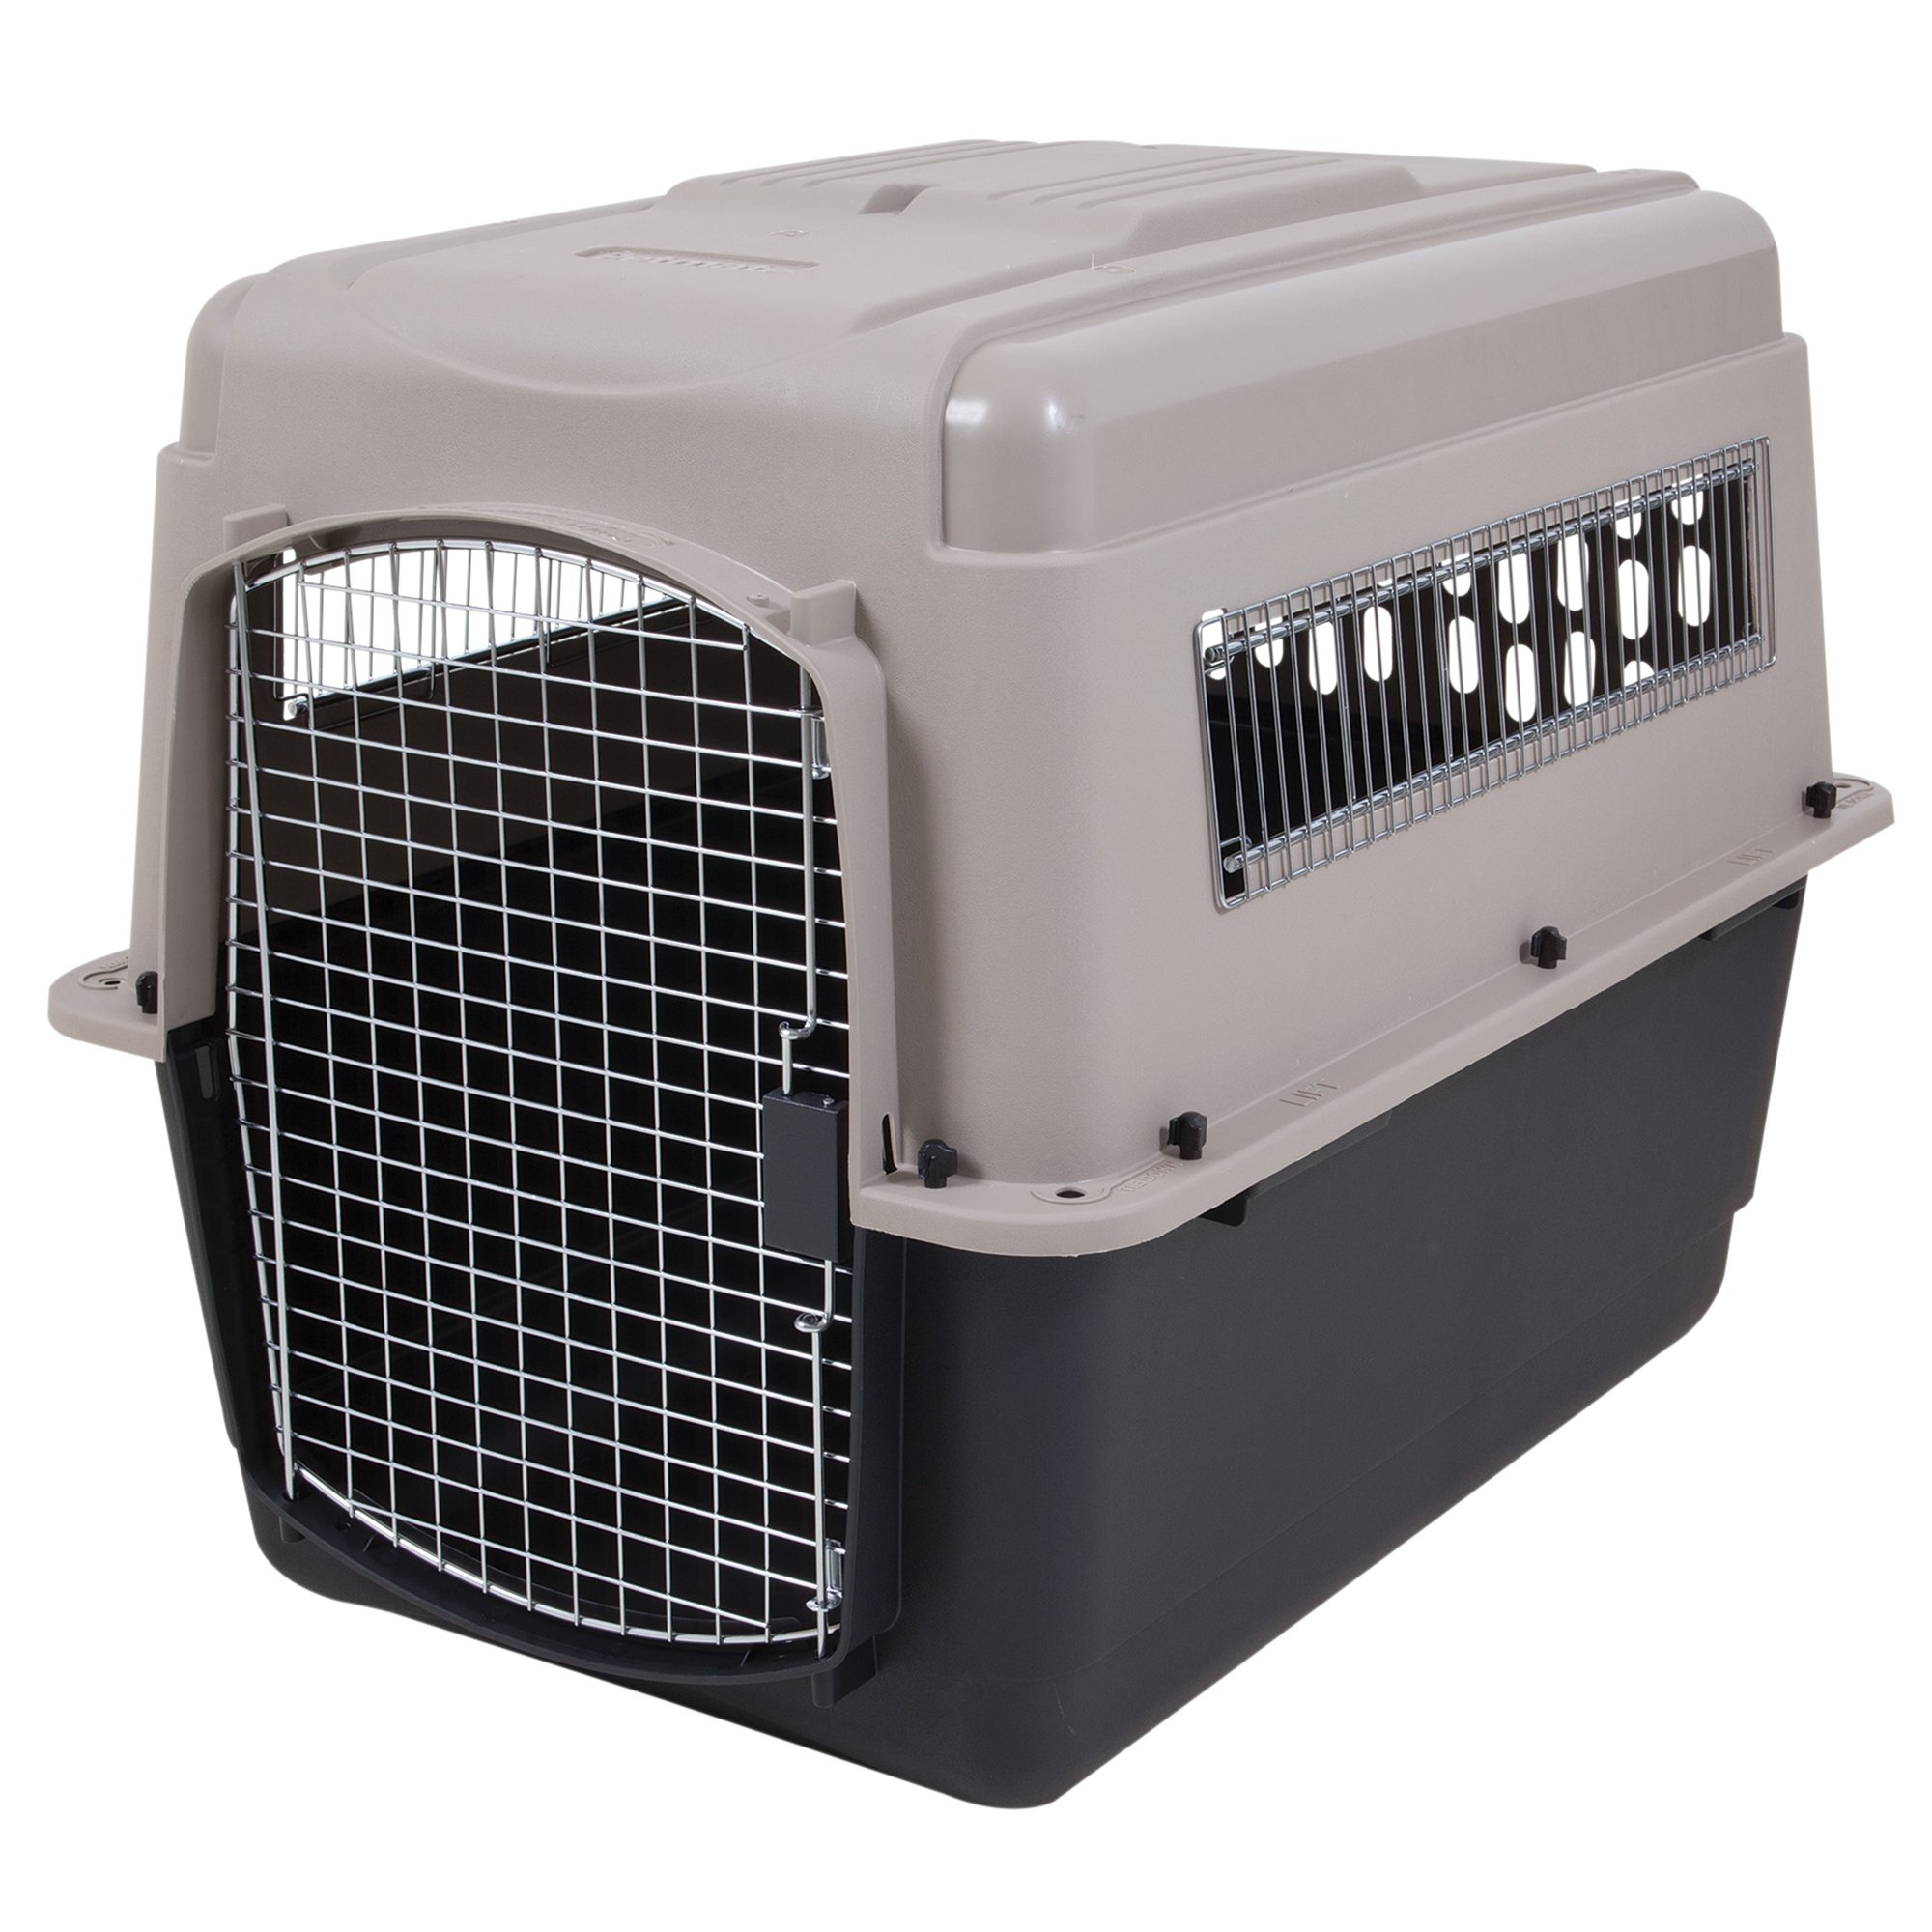 Find best value and selection for your LARGE PETCO DOG CRATE search on eBay. World's leading marketplace.